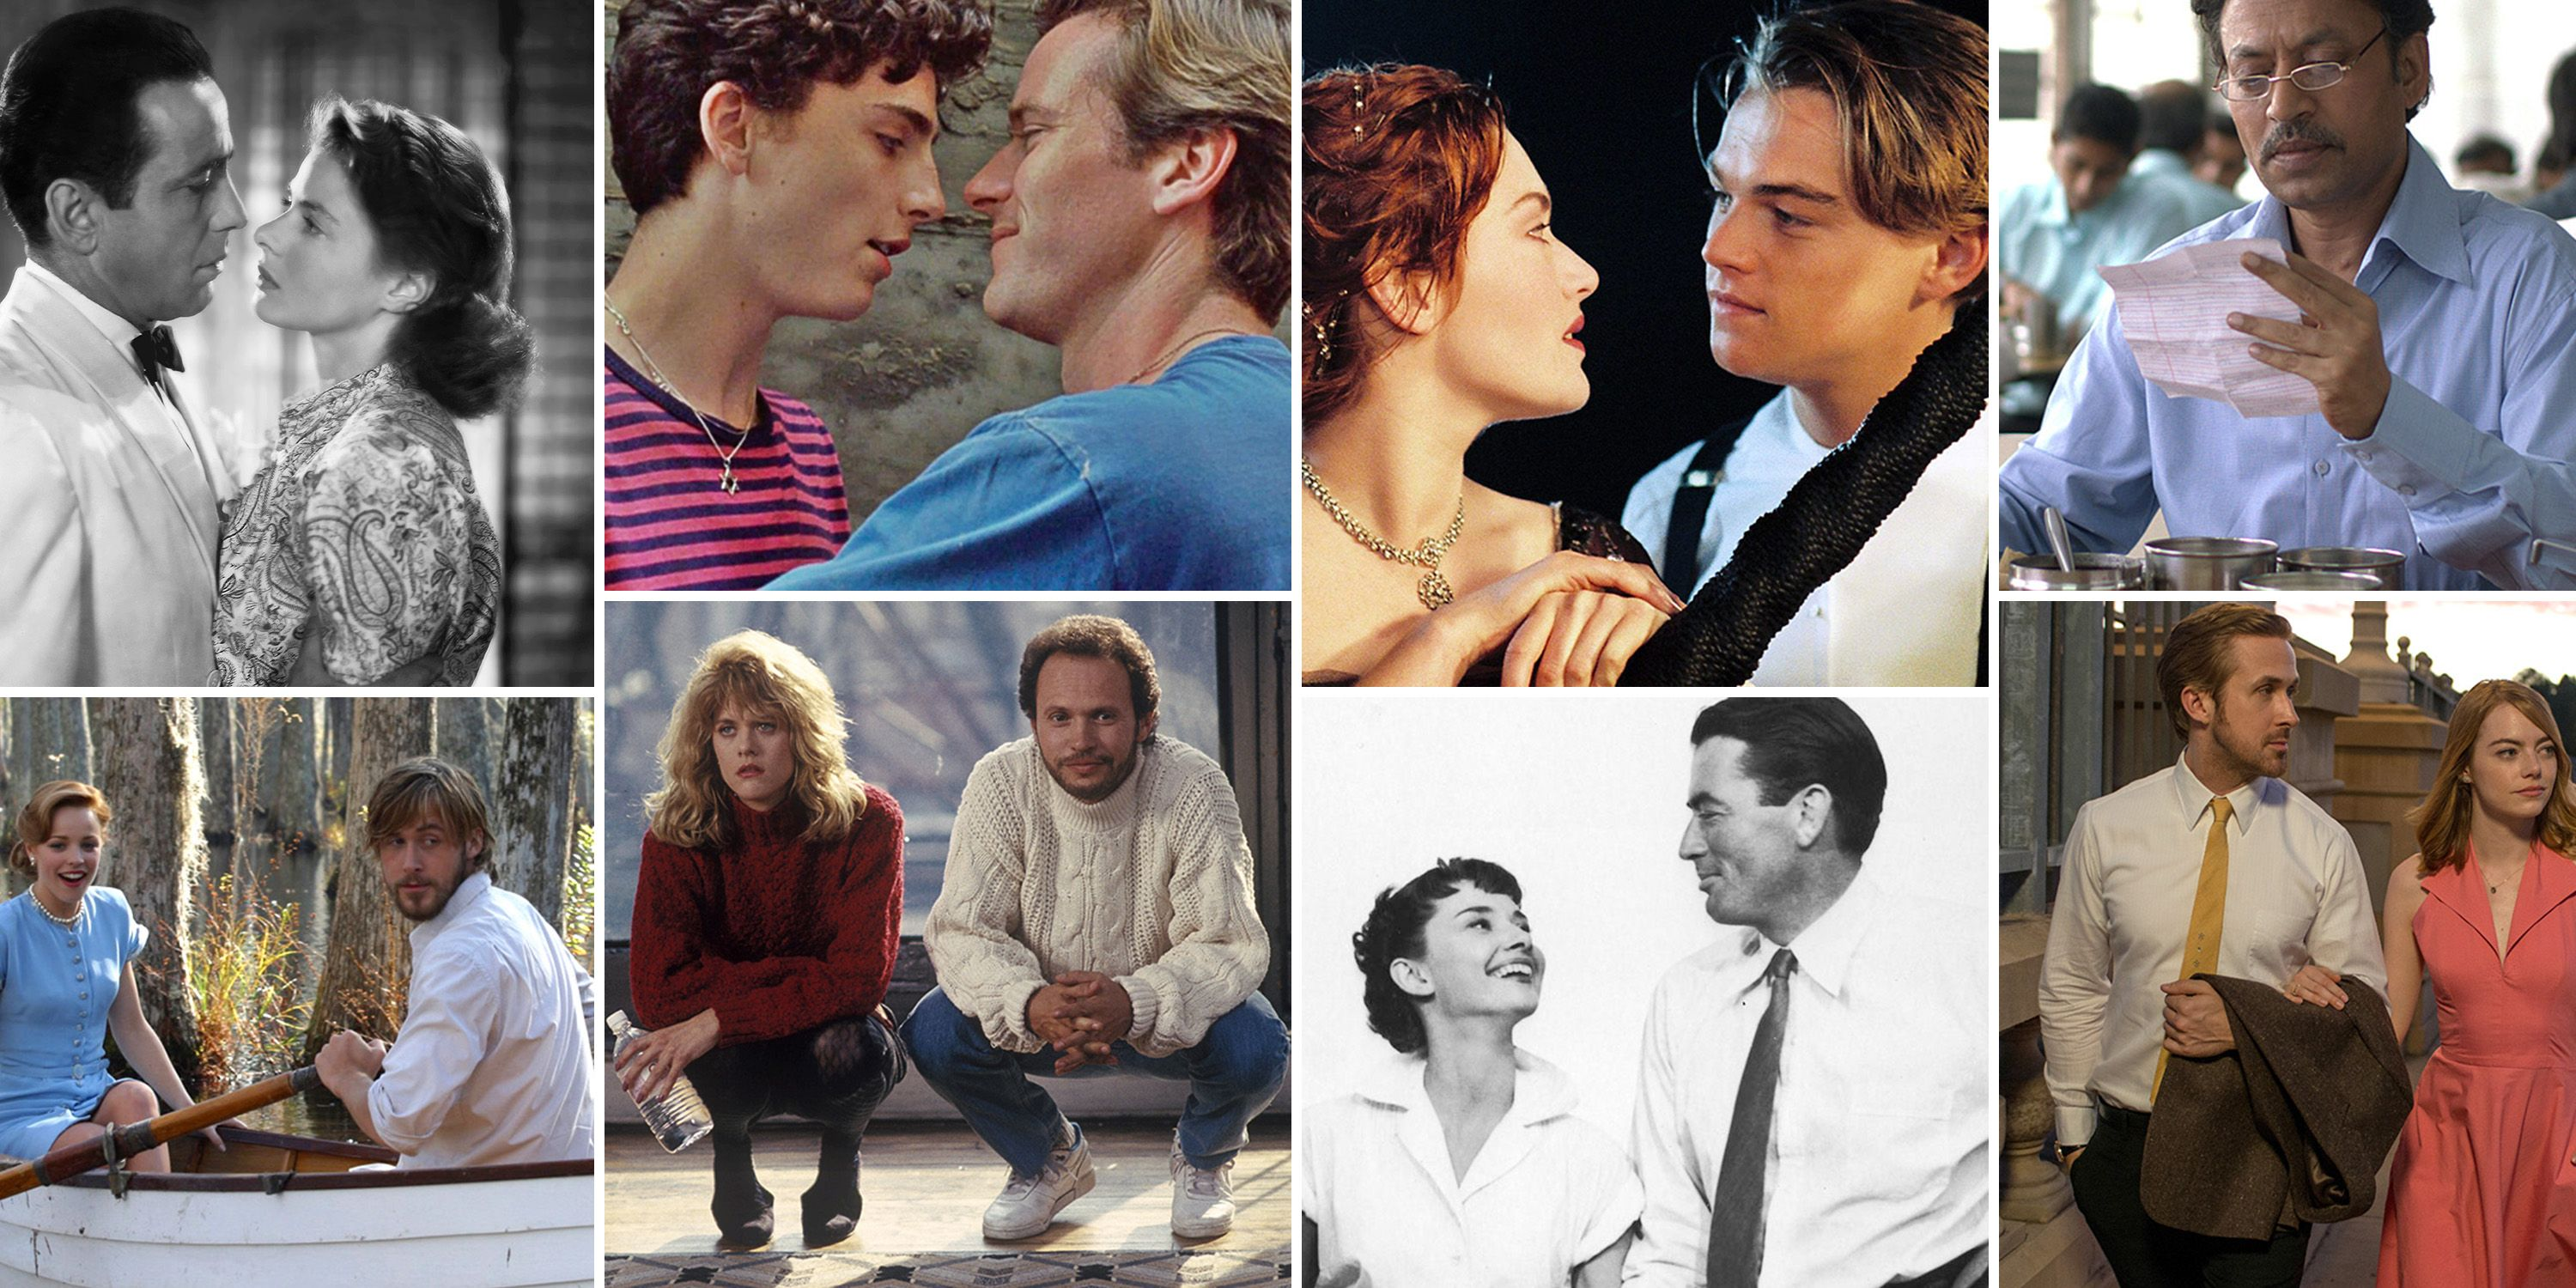 20movies about the beauty oflove inall its forms